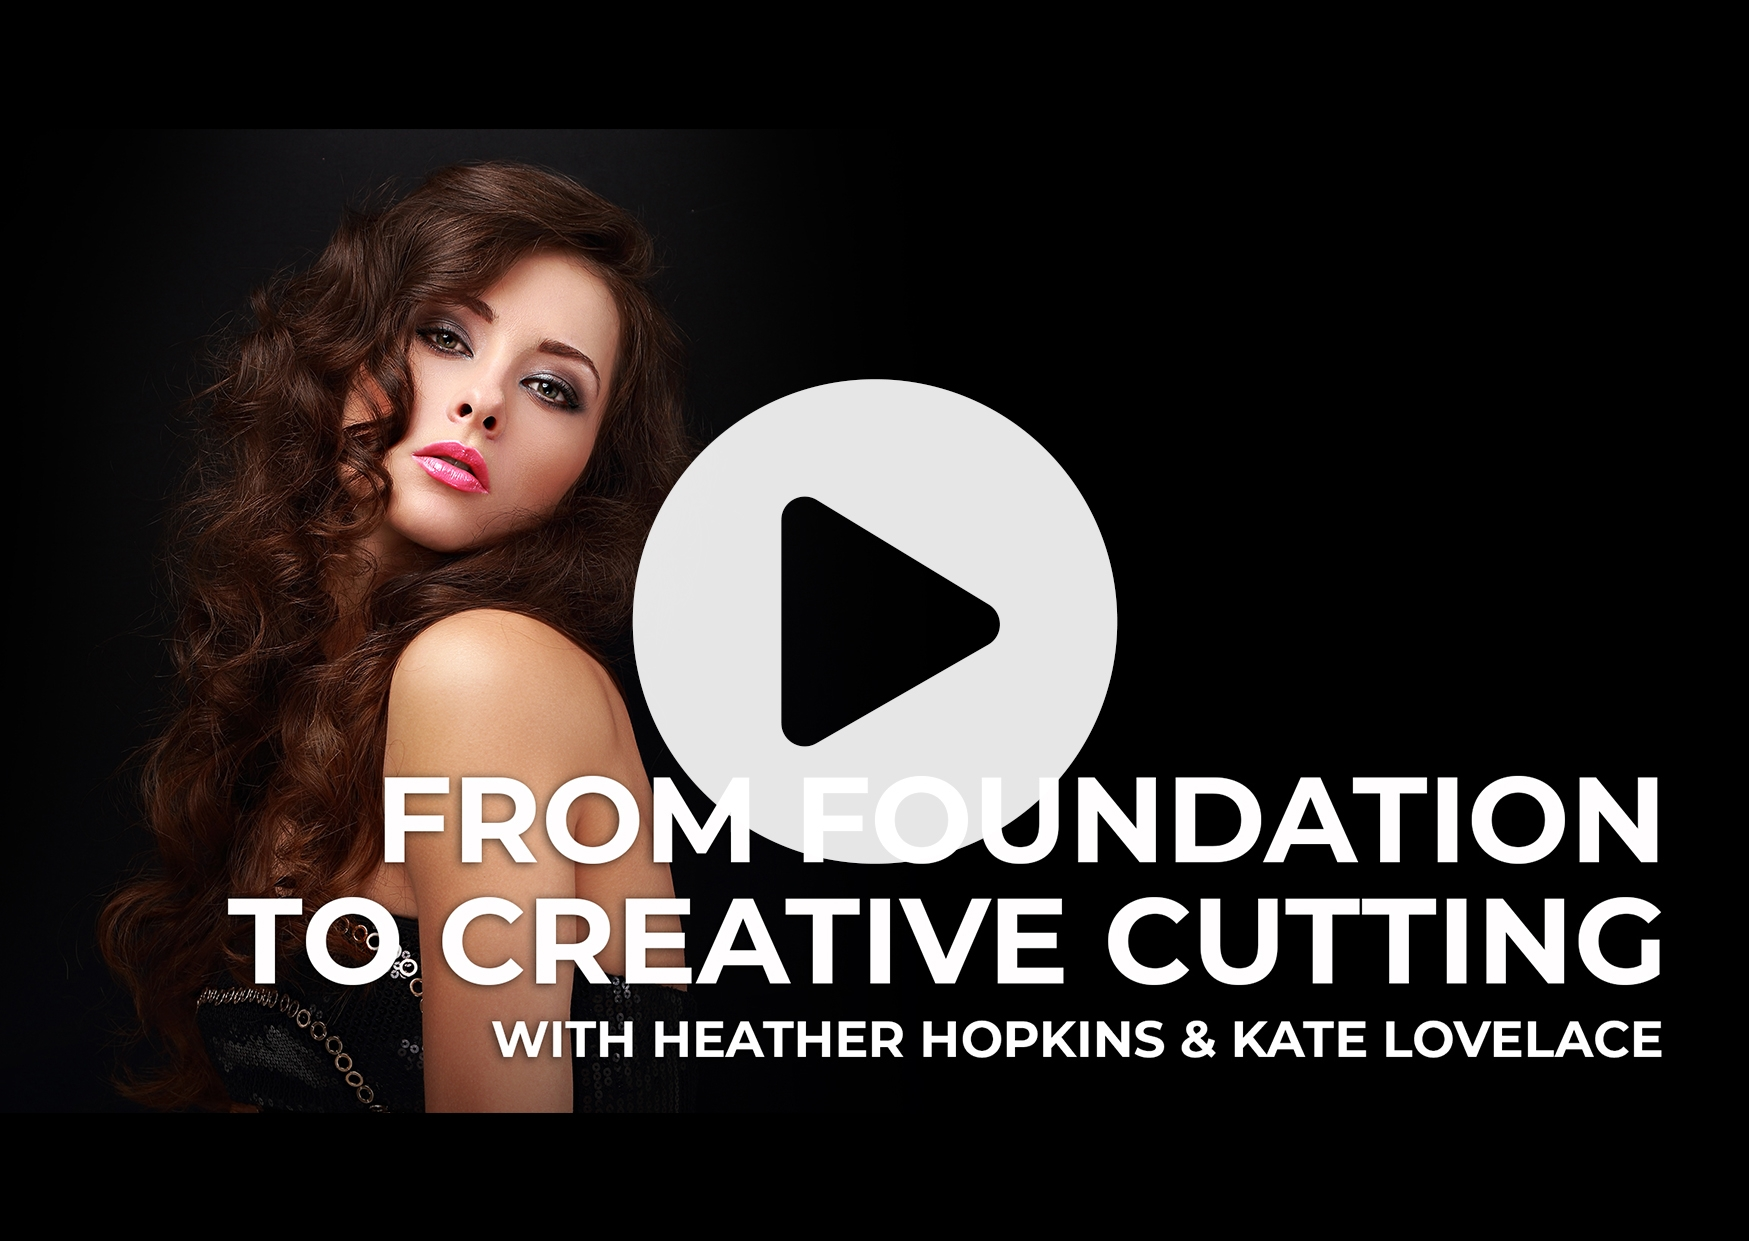 From Foundation to Creative Cutting Session 6